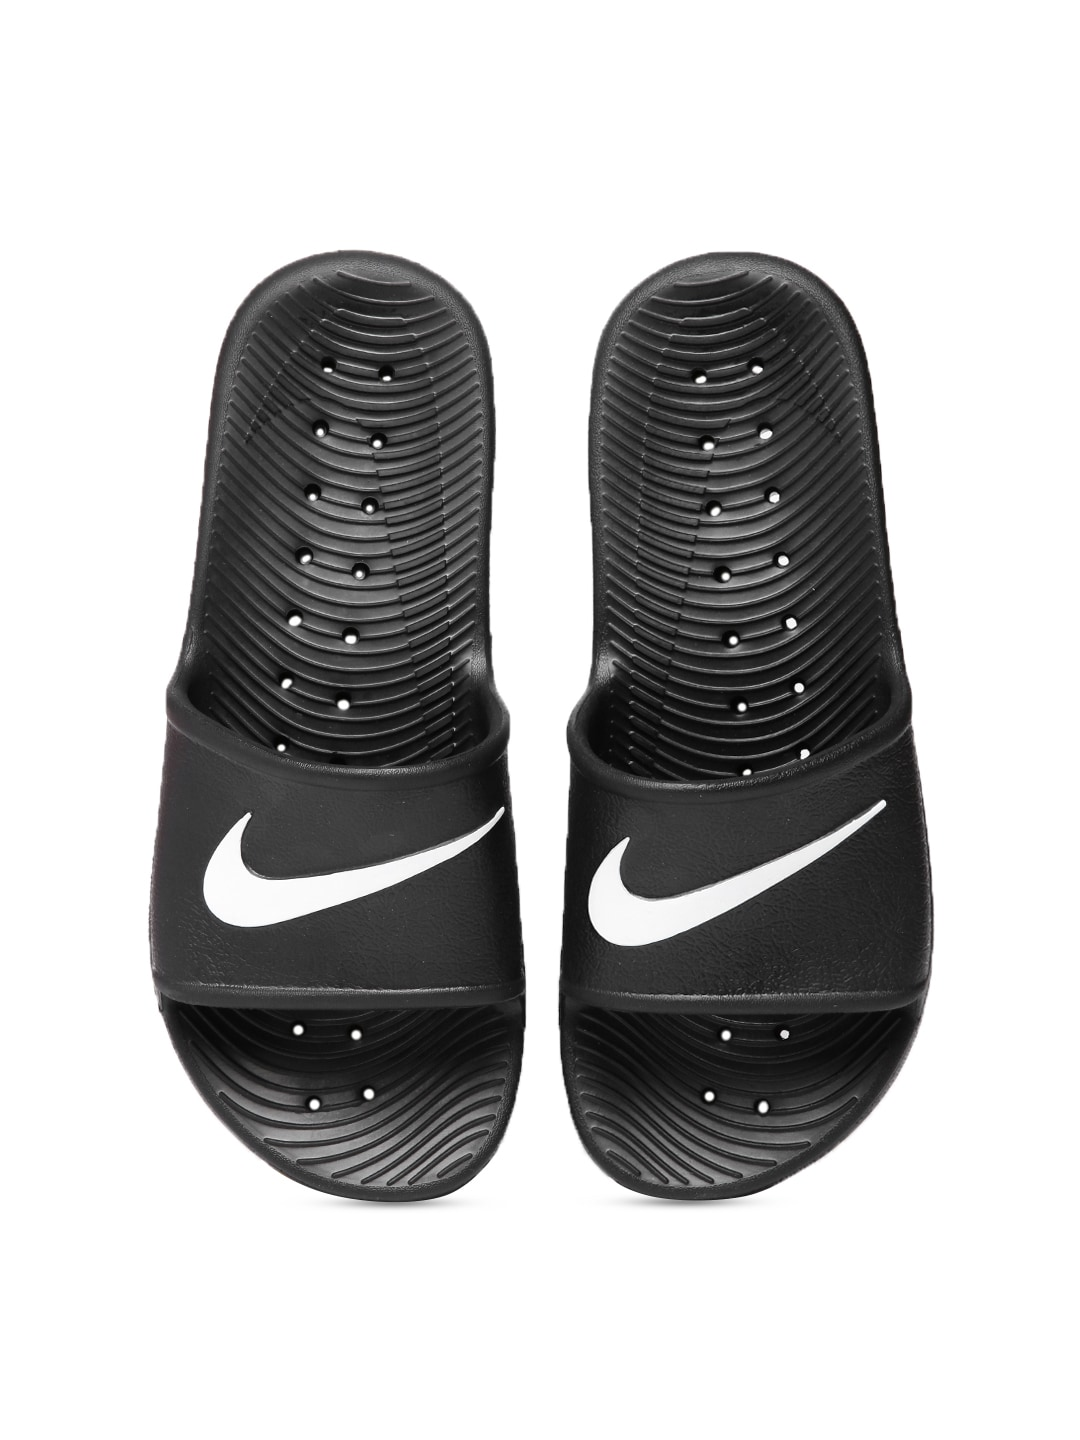 b678b948537 Nike - Shop for Nike Apparels Online in India